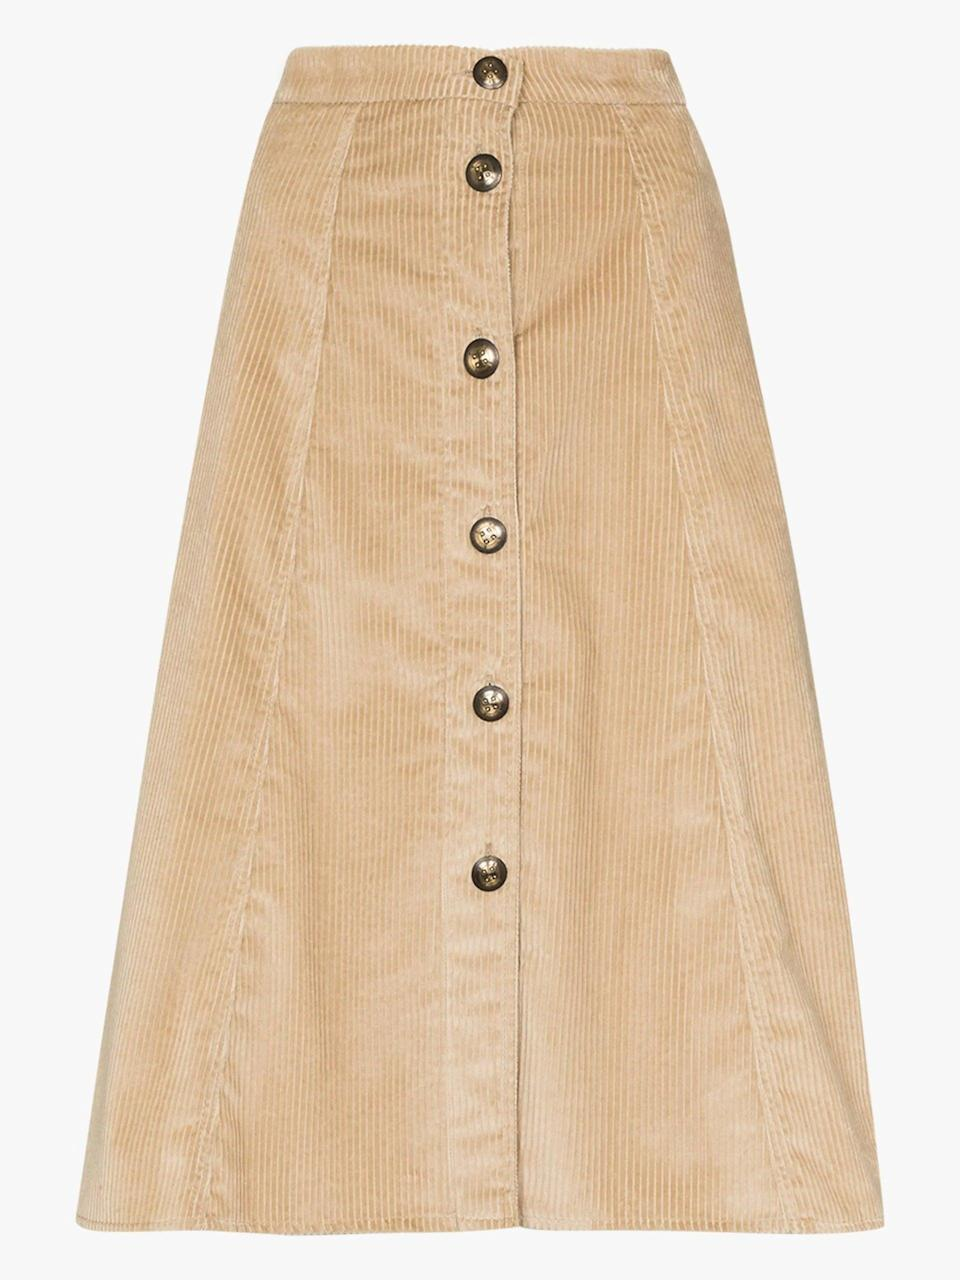 """<br><br><strong>Etro</strong> Corduroy Button Midi Skirt, $, available at <a href=""""https://www.brownsfashion.com/uk/shopping/etro-corduroy-button-midi-skirt-15271324"""" rel=""""nofollow noopener"""" target=""""_blank"""" data-ylk=""""slk:Browns"""" class=""""link rapid-noclick-resp"""">Browns</a>"""